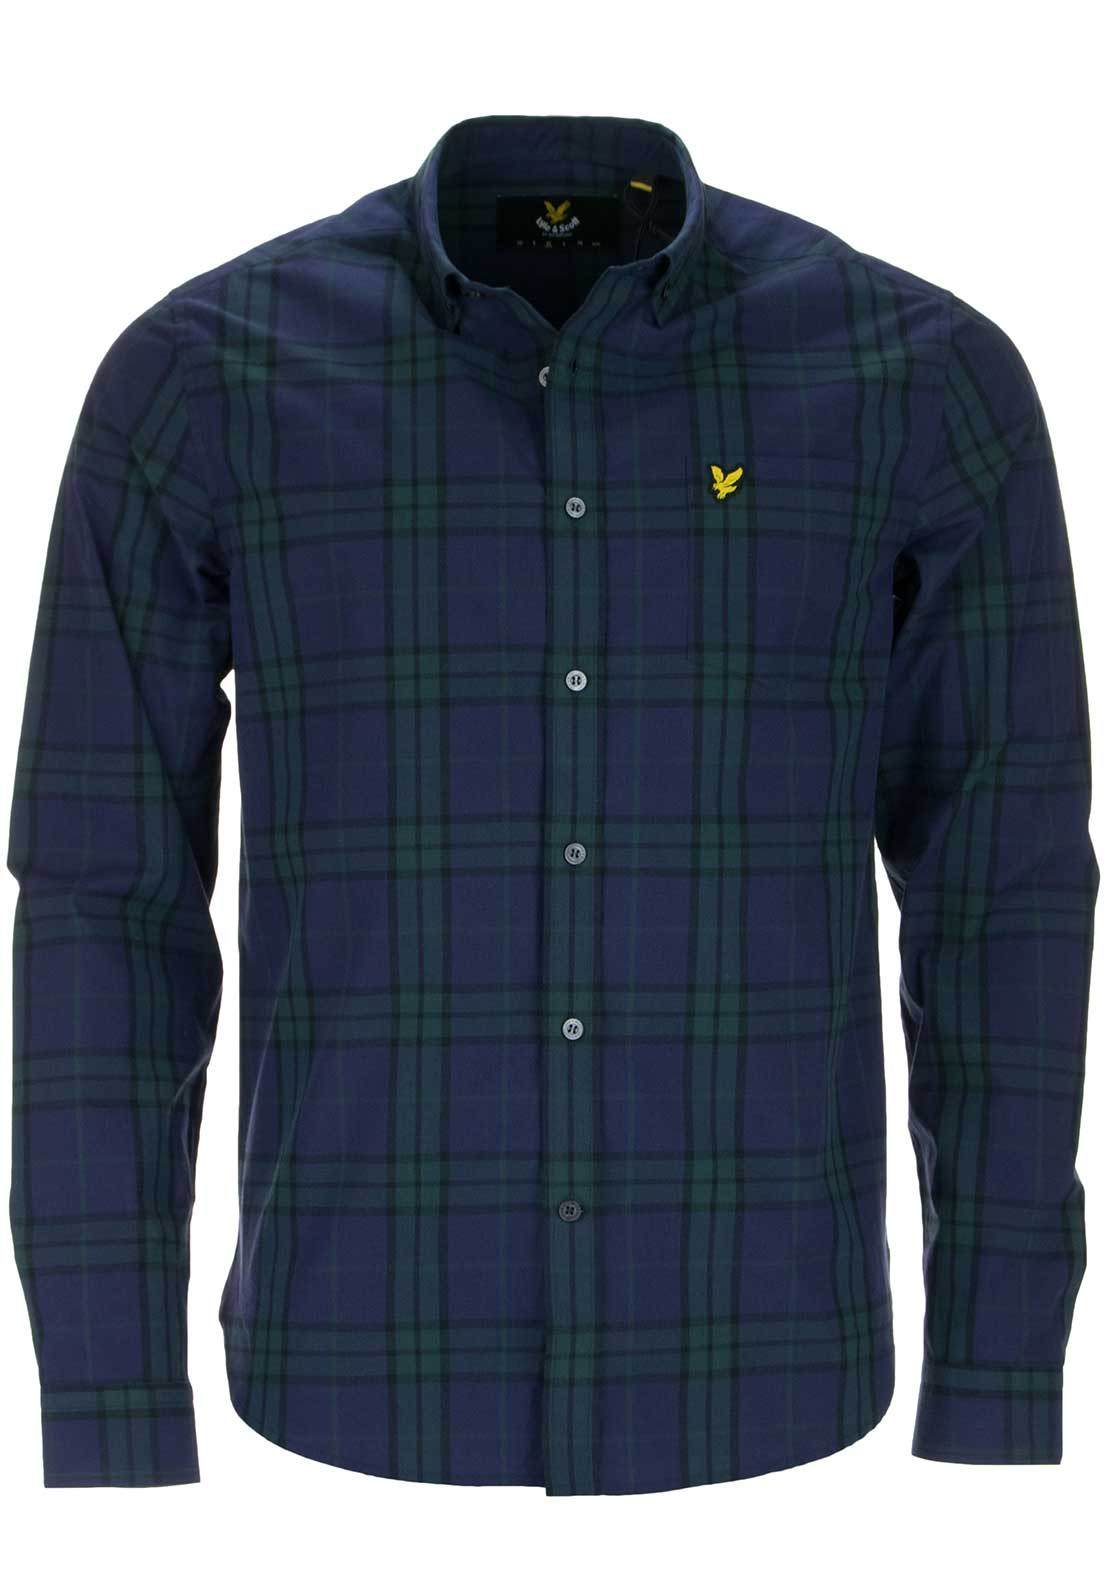 Lyle & Scott Mens Tartan Checked Long Sleeved Shirt, Navy